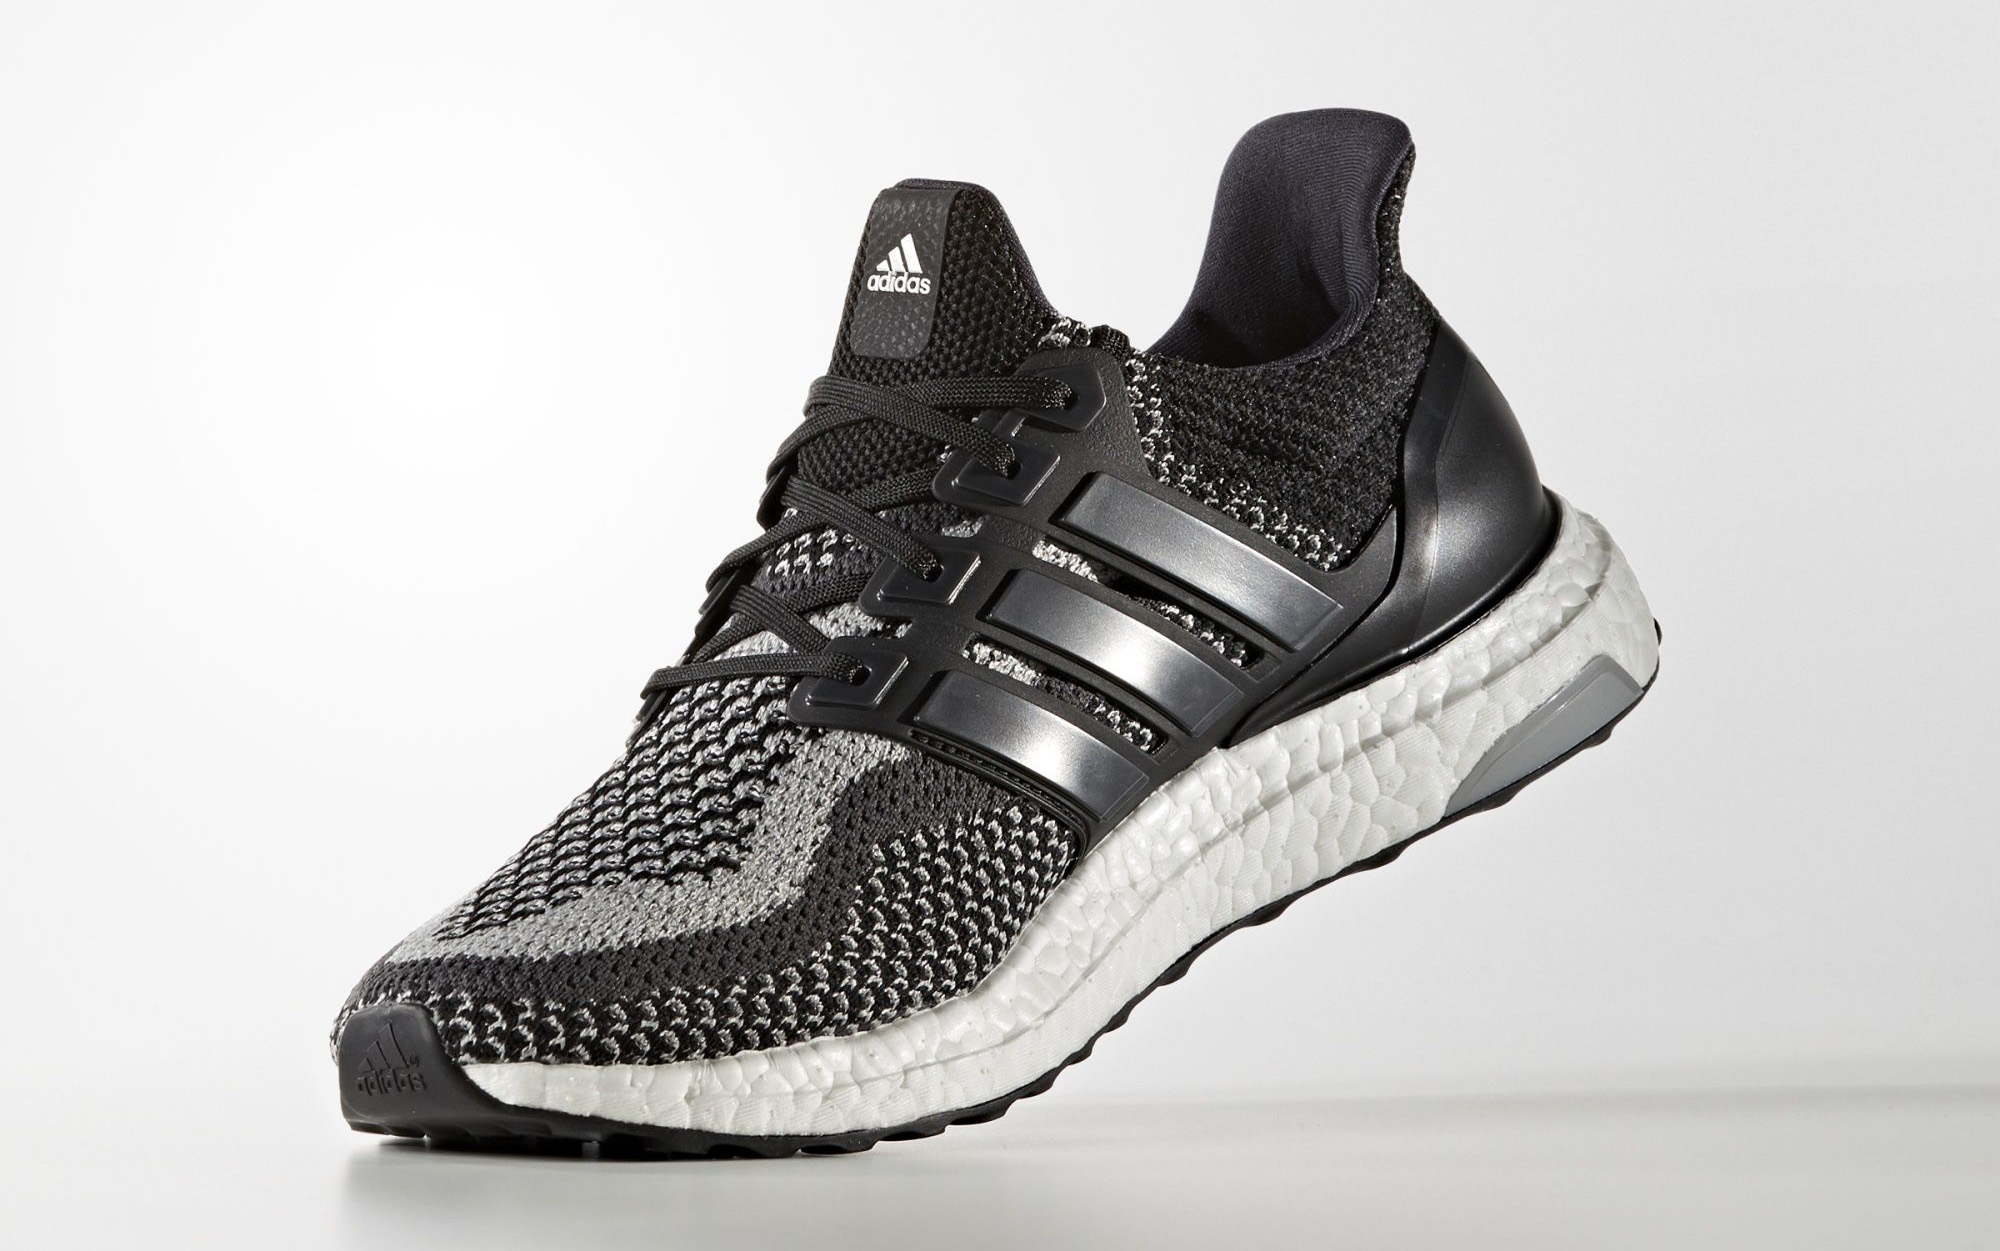 Black Adidas Ultra Boost Reflective Medial